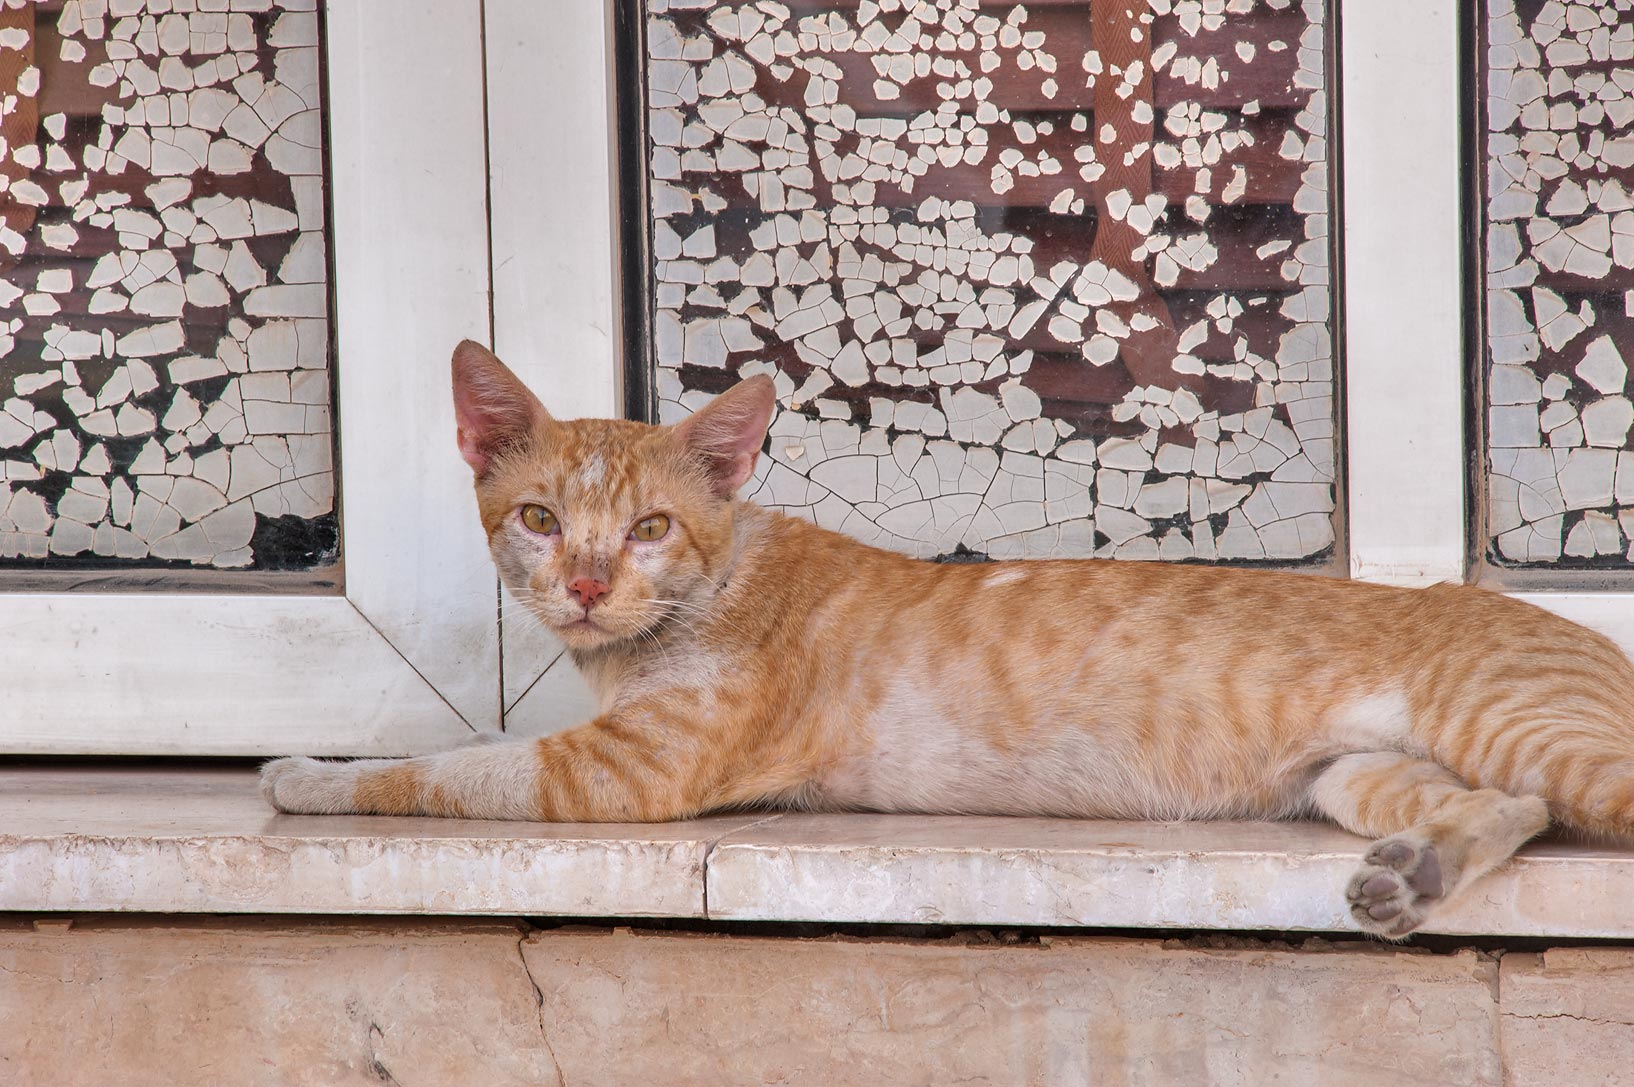 Brown cat on window sill on Ibn Hanbal St., Musheirib area. Doha, Qatar